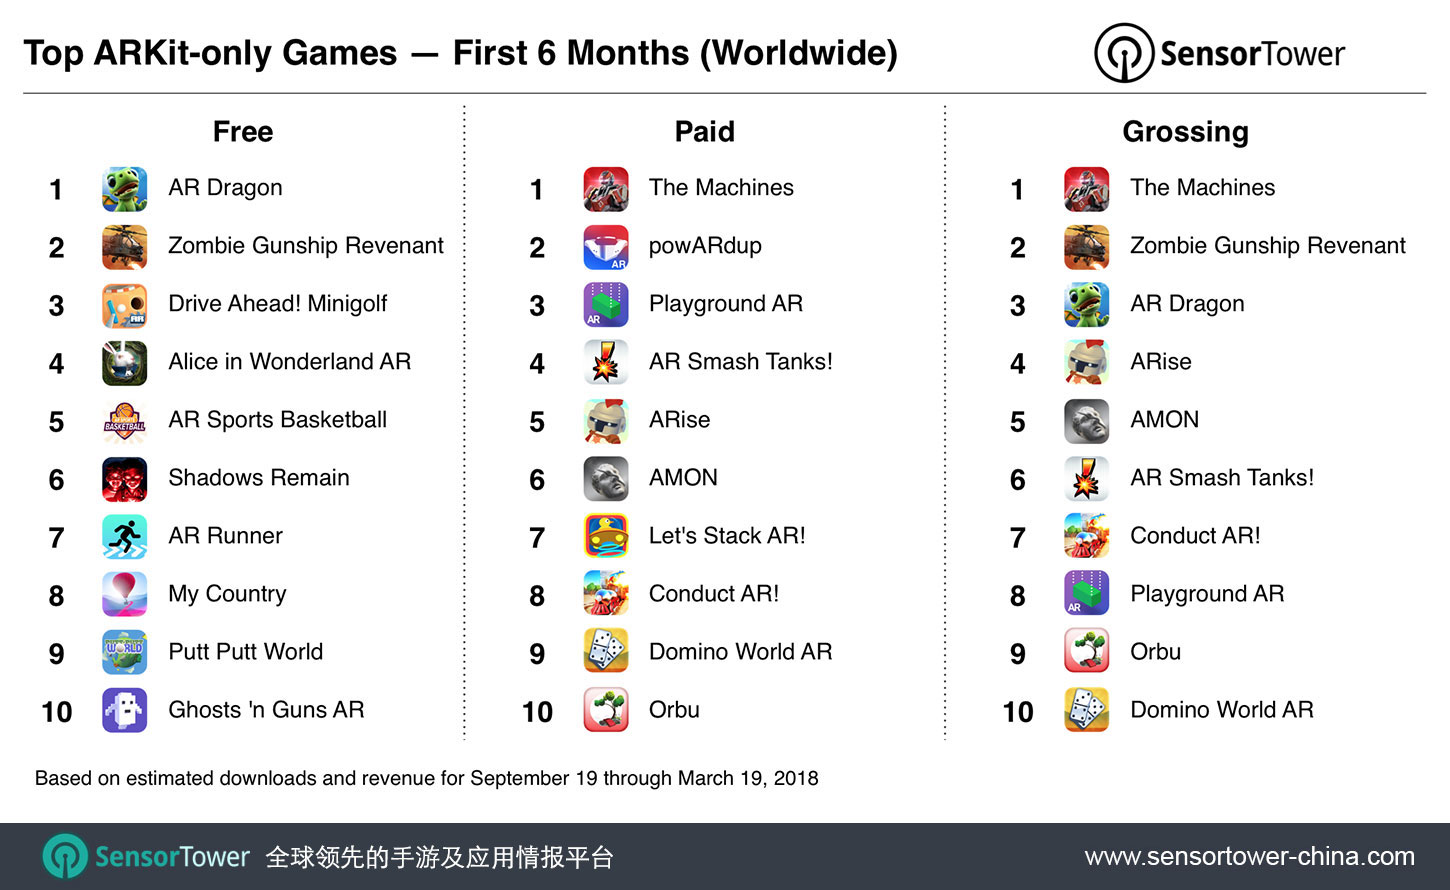 Ranking of top free, paid, and grossing ARKit mobile games overall for September 19, 2017 to March 19, 2018 CN  - top arkit games six months cn - 亮相半年后,全面基于ARKit技术而开发的App全球下载量超过1300万次,几乎一半来自游戏